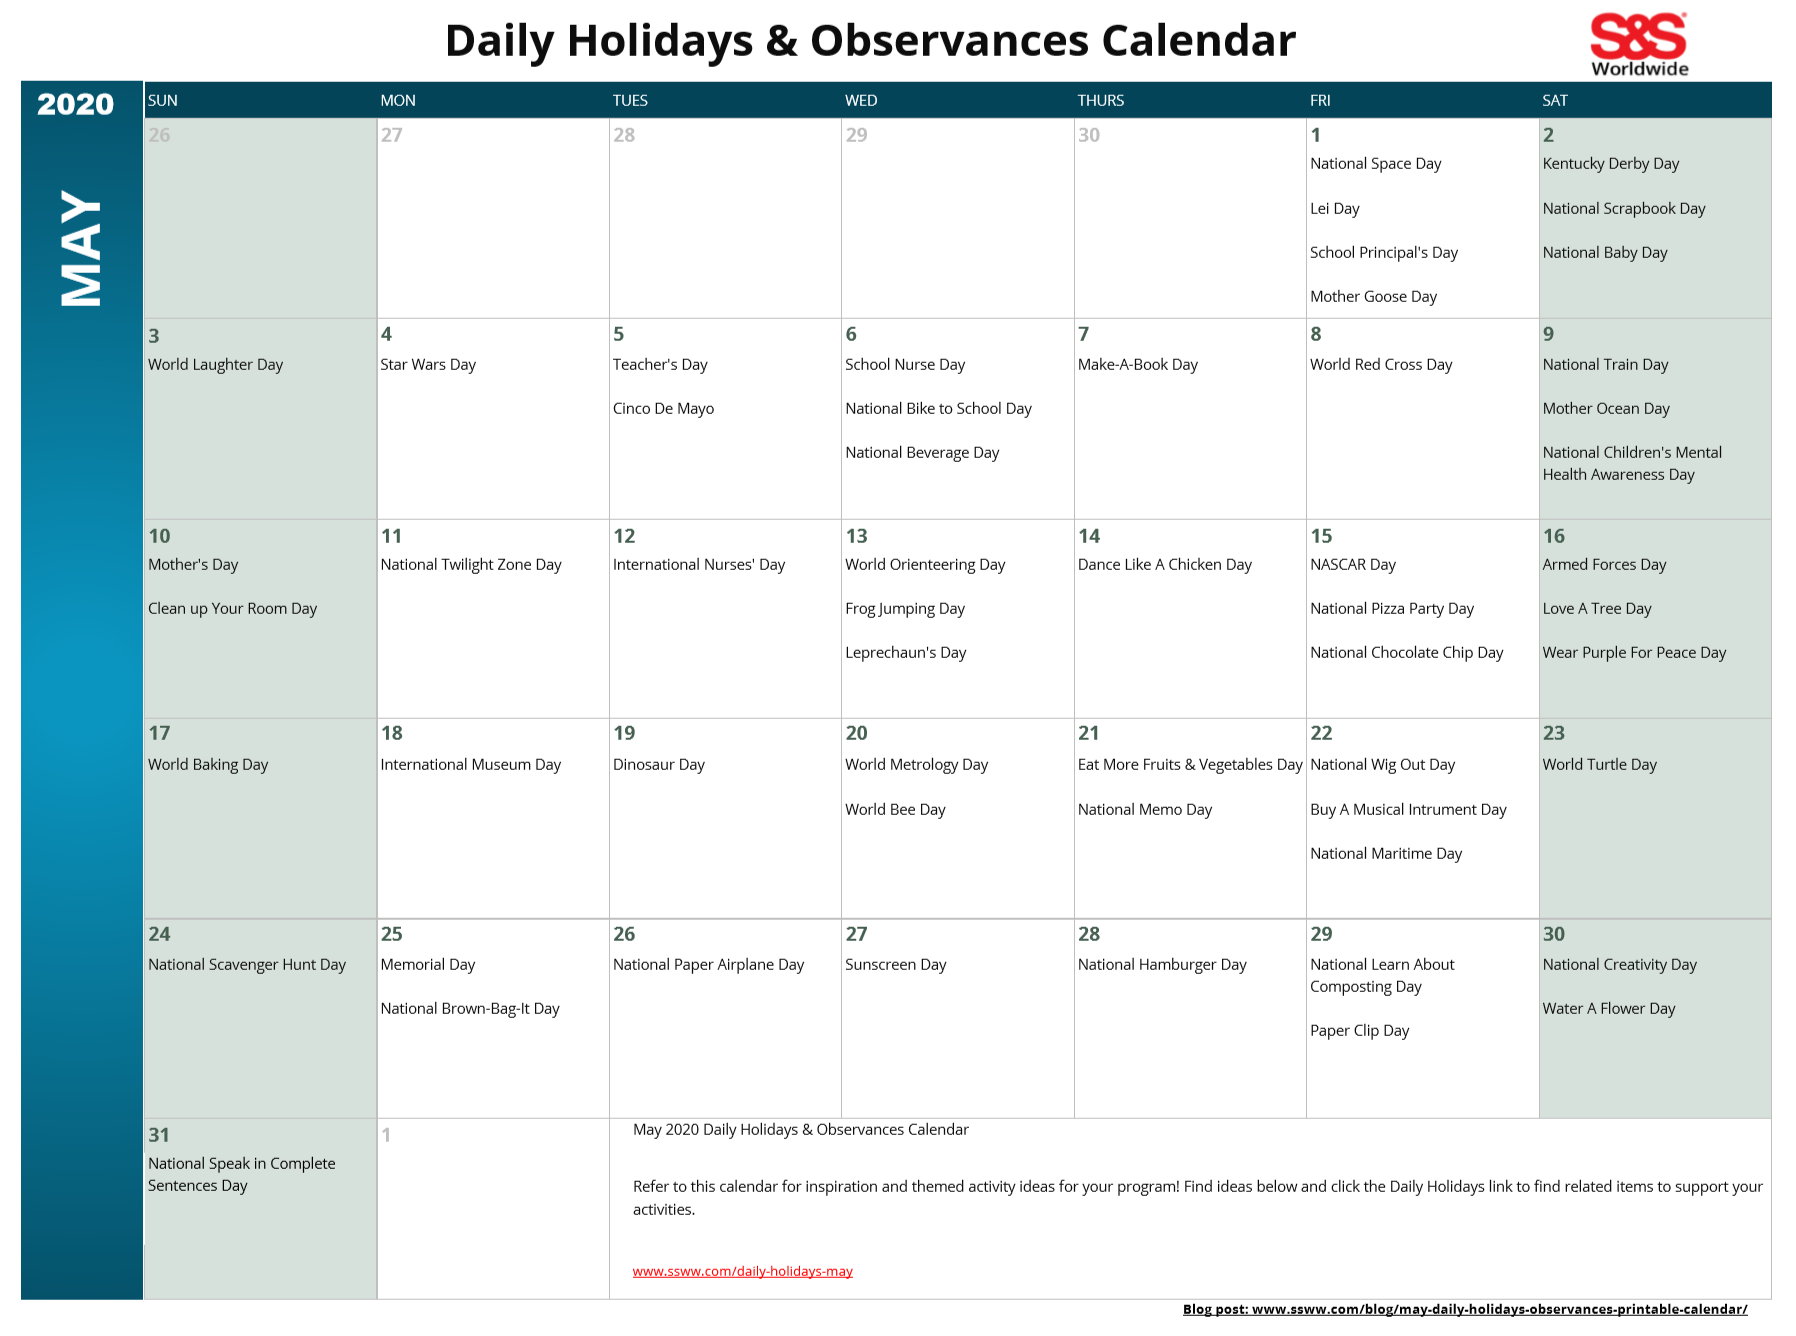 May Daily Holidays & Observances Printable Calendar - S&s Blog Throughout Every Day Is A Holiday Printable